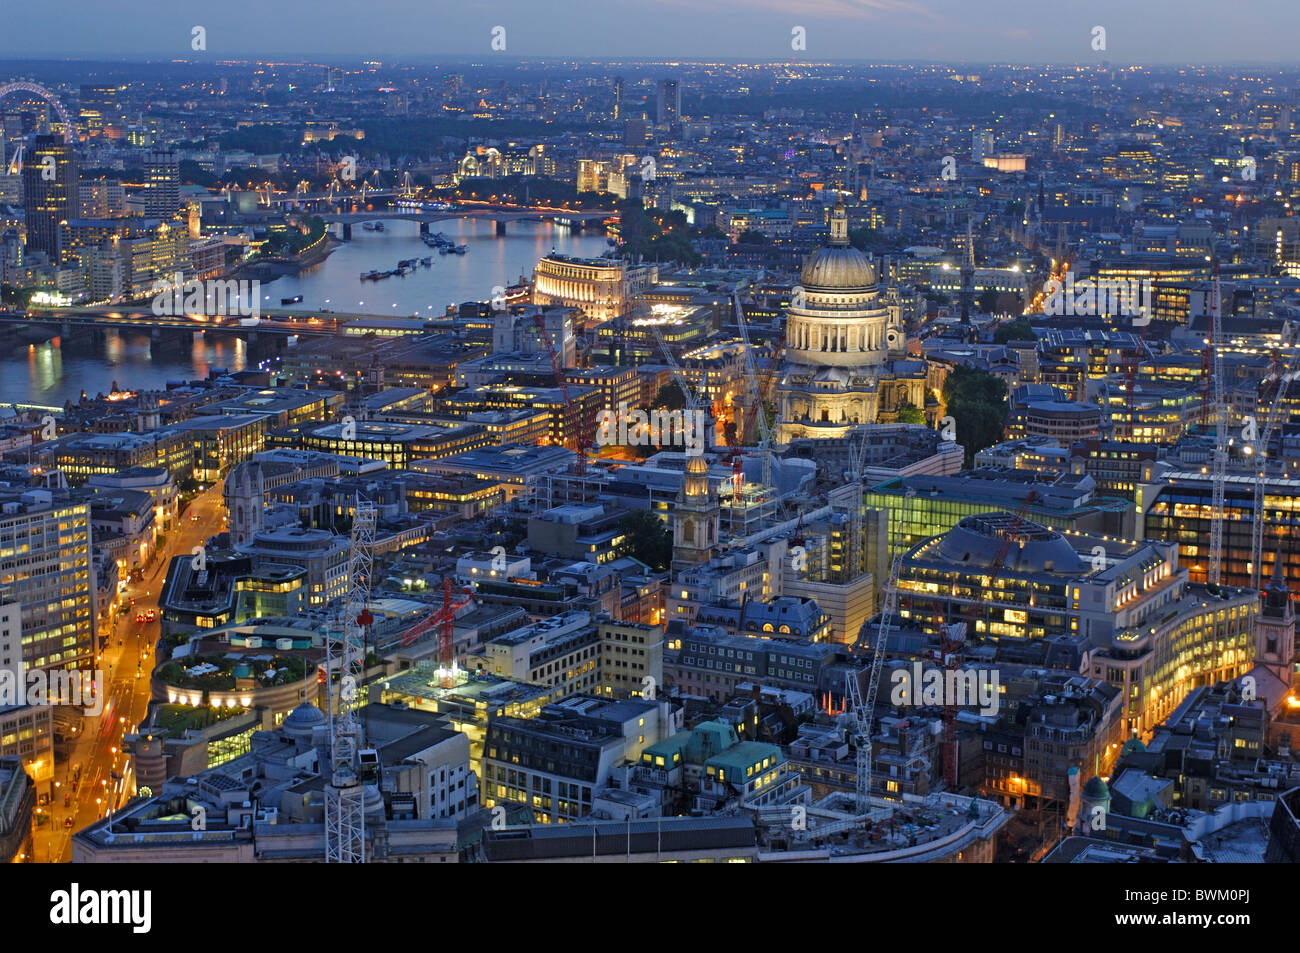 UK London St. Paul Cathedral View from Vertigo 42 City Great Britain Europe England evening dusk at night - Stock Image